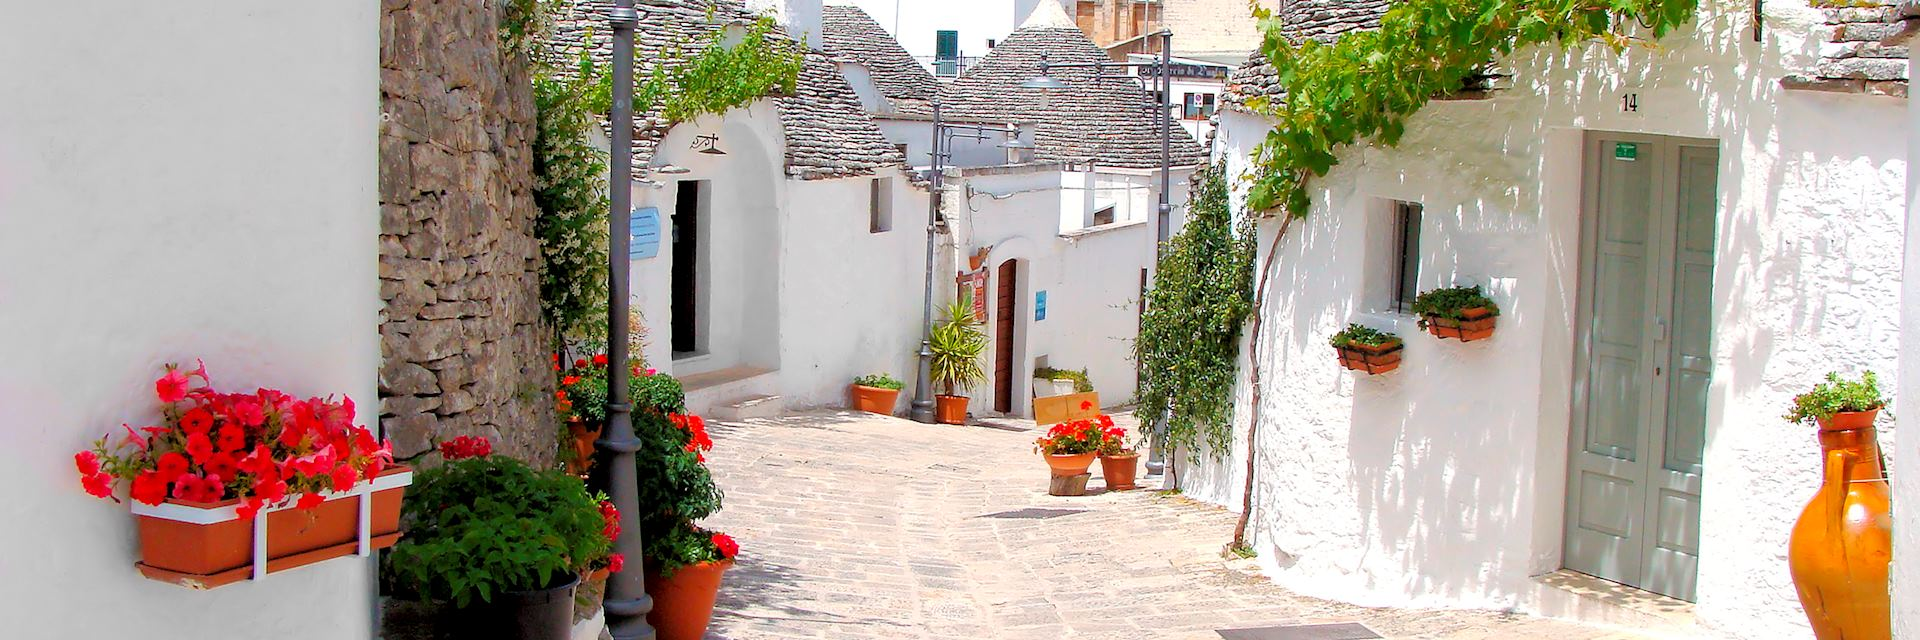 Street in Alberobello